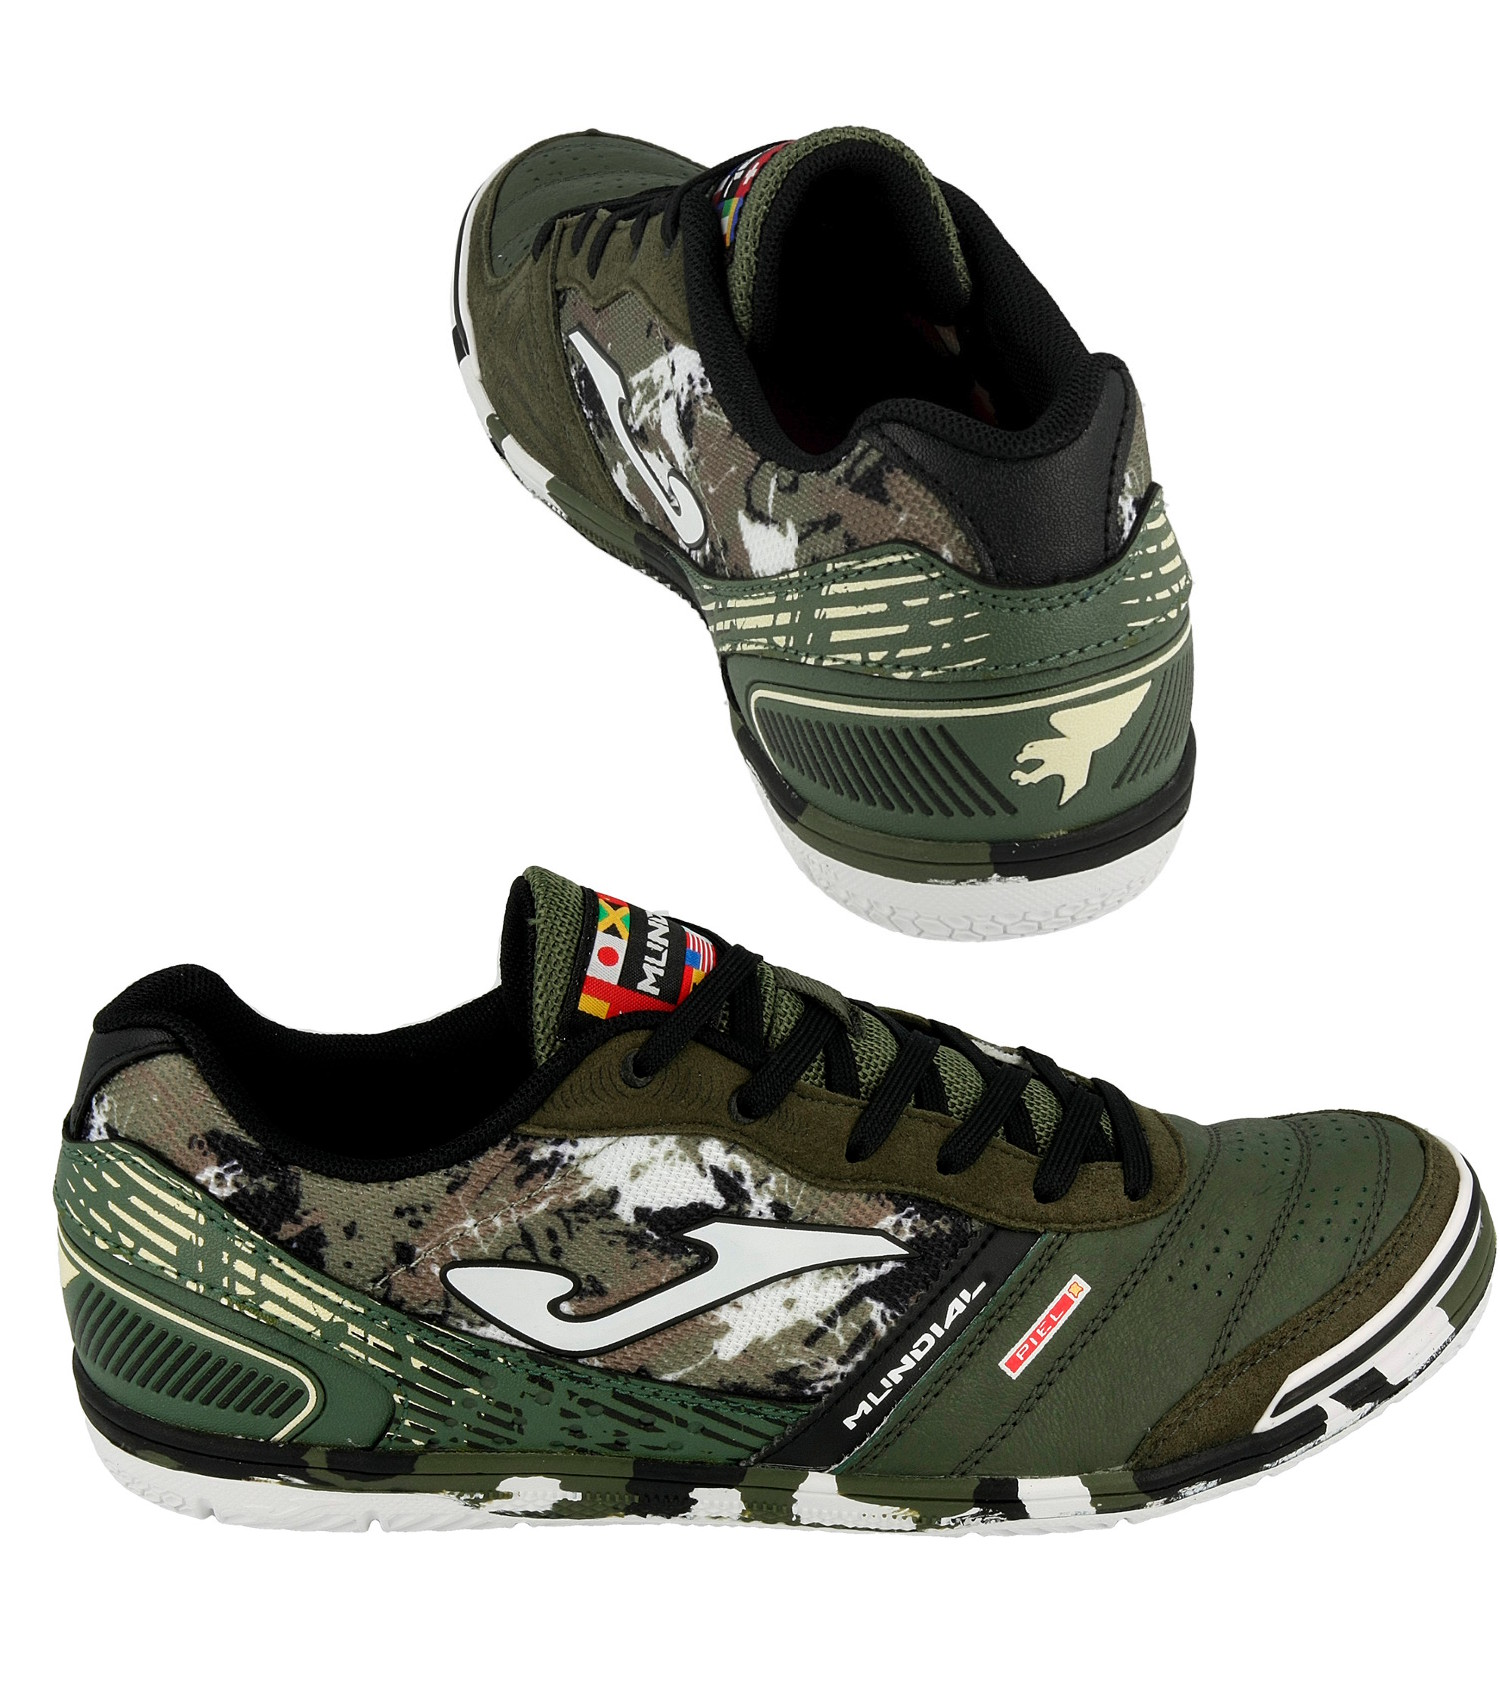 Football boots shoes Joma Cleats Mundial Green Indoor IC Sala Futsal parquet a3b8aff1563e7